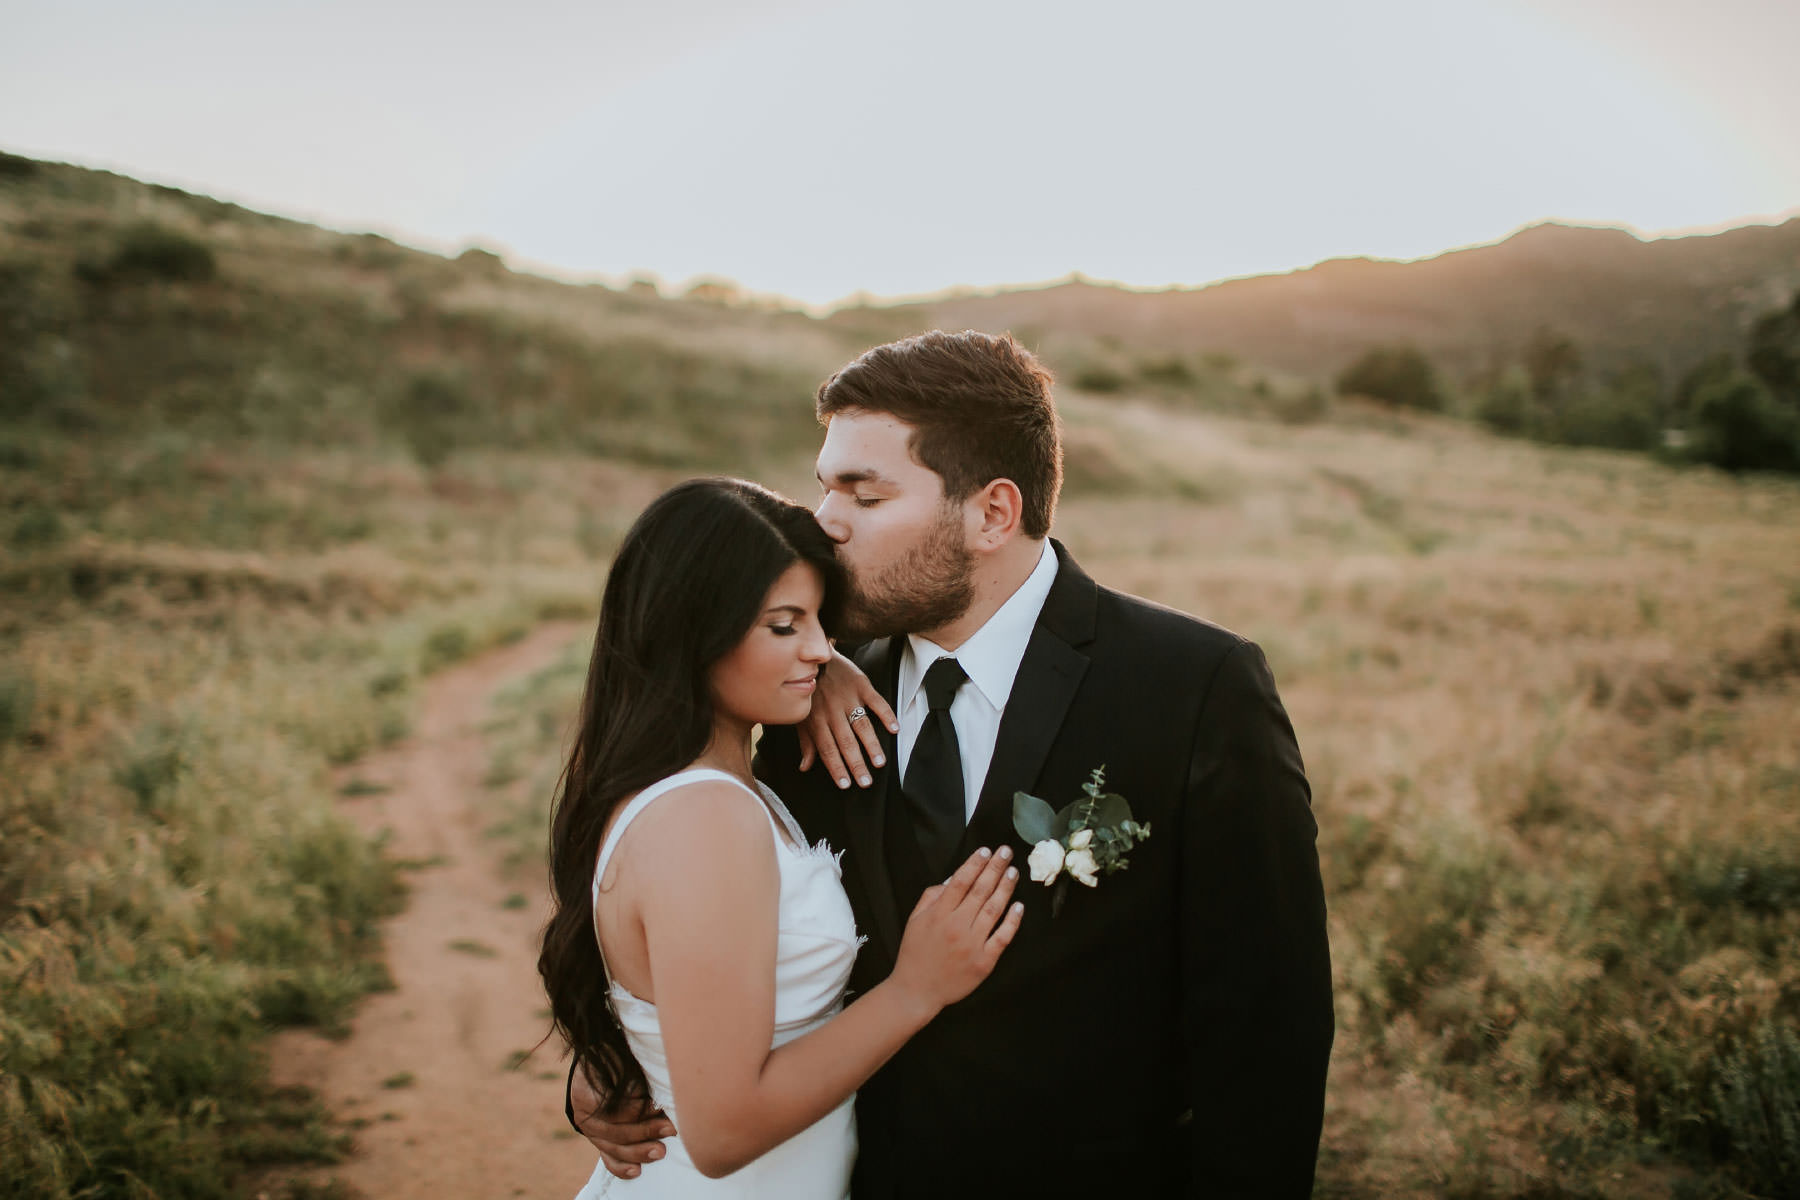 Bride and groom romantics in an open field at golden hour in San Diego